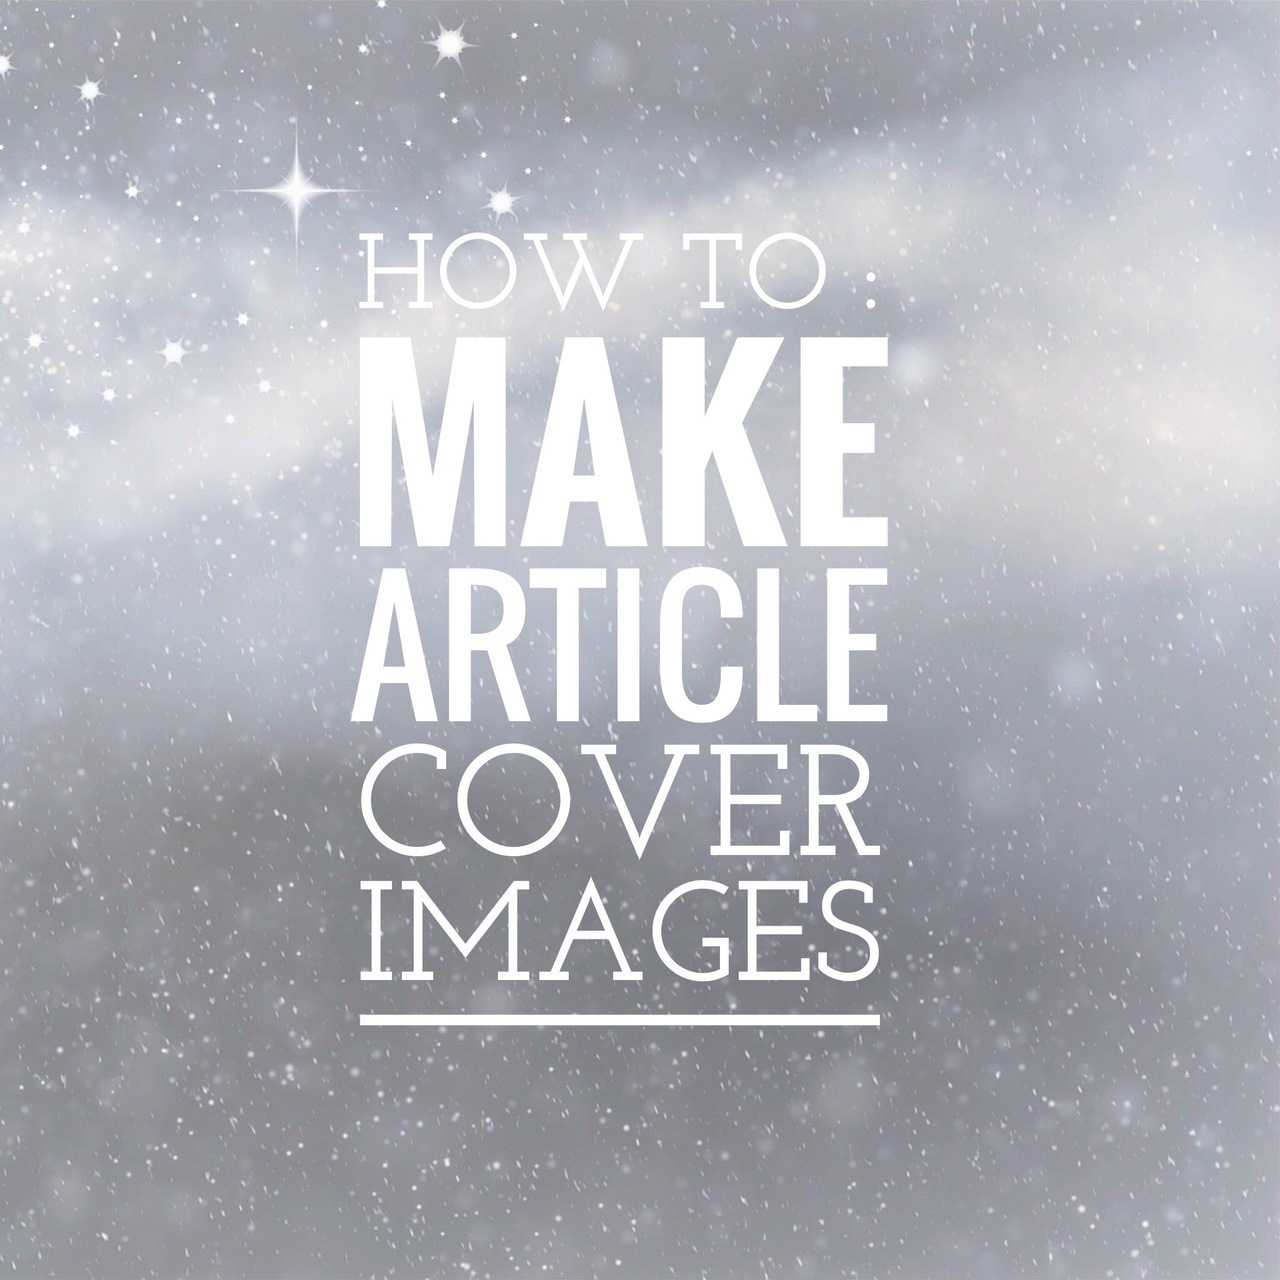 article, articles, and diy image